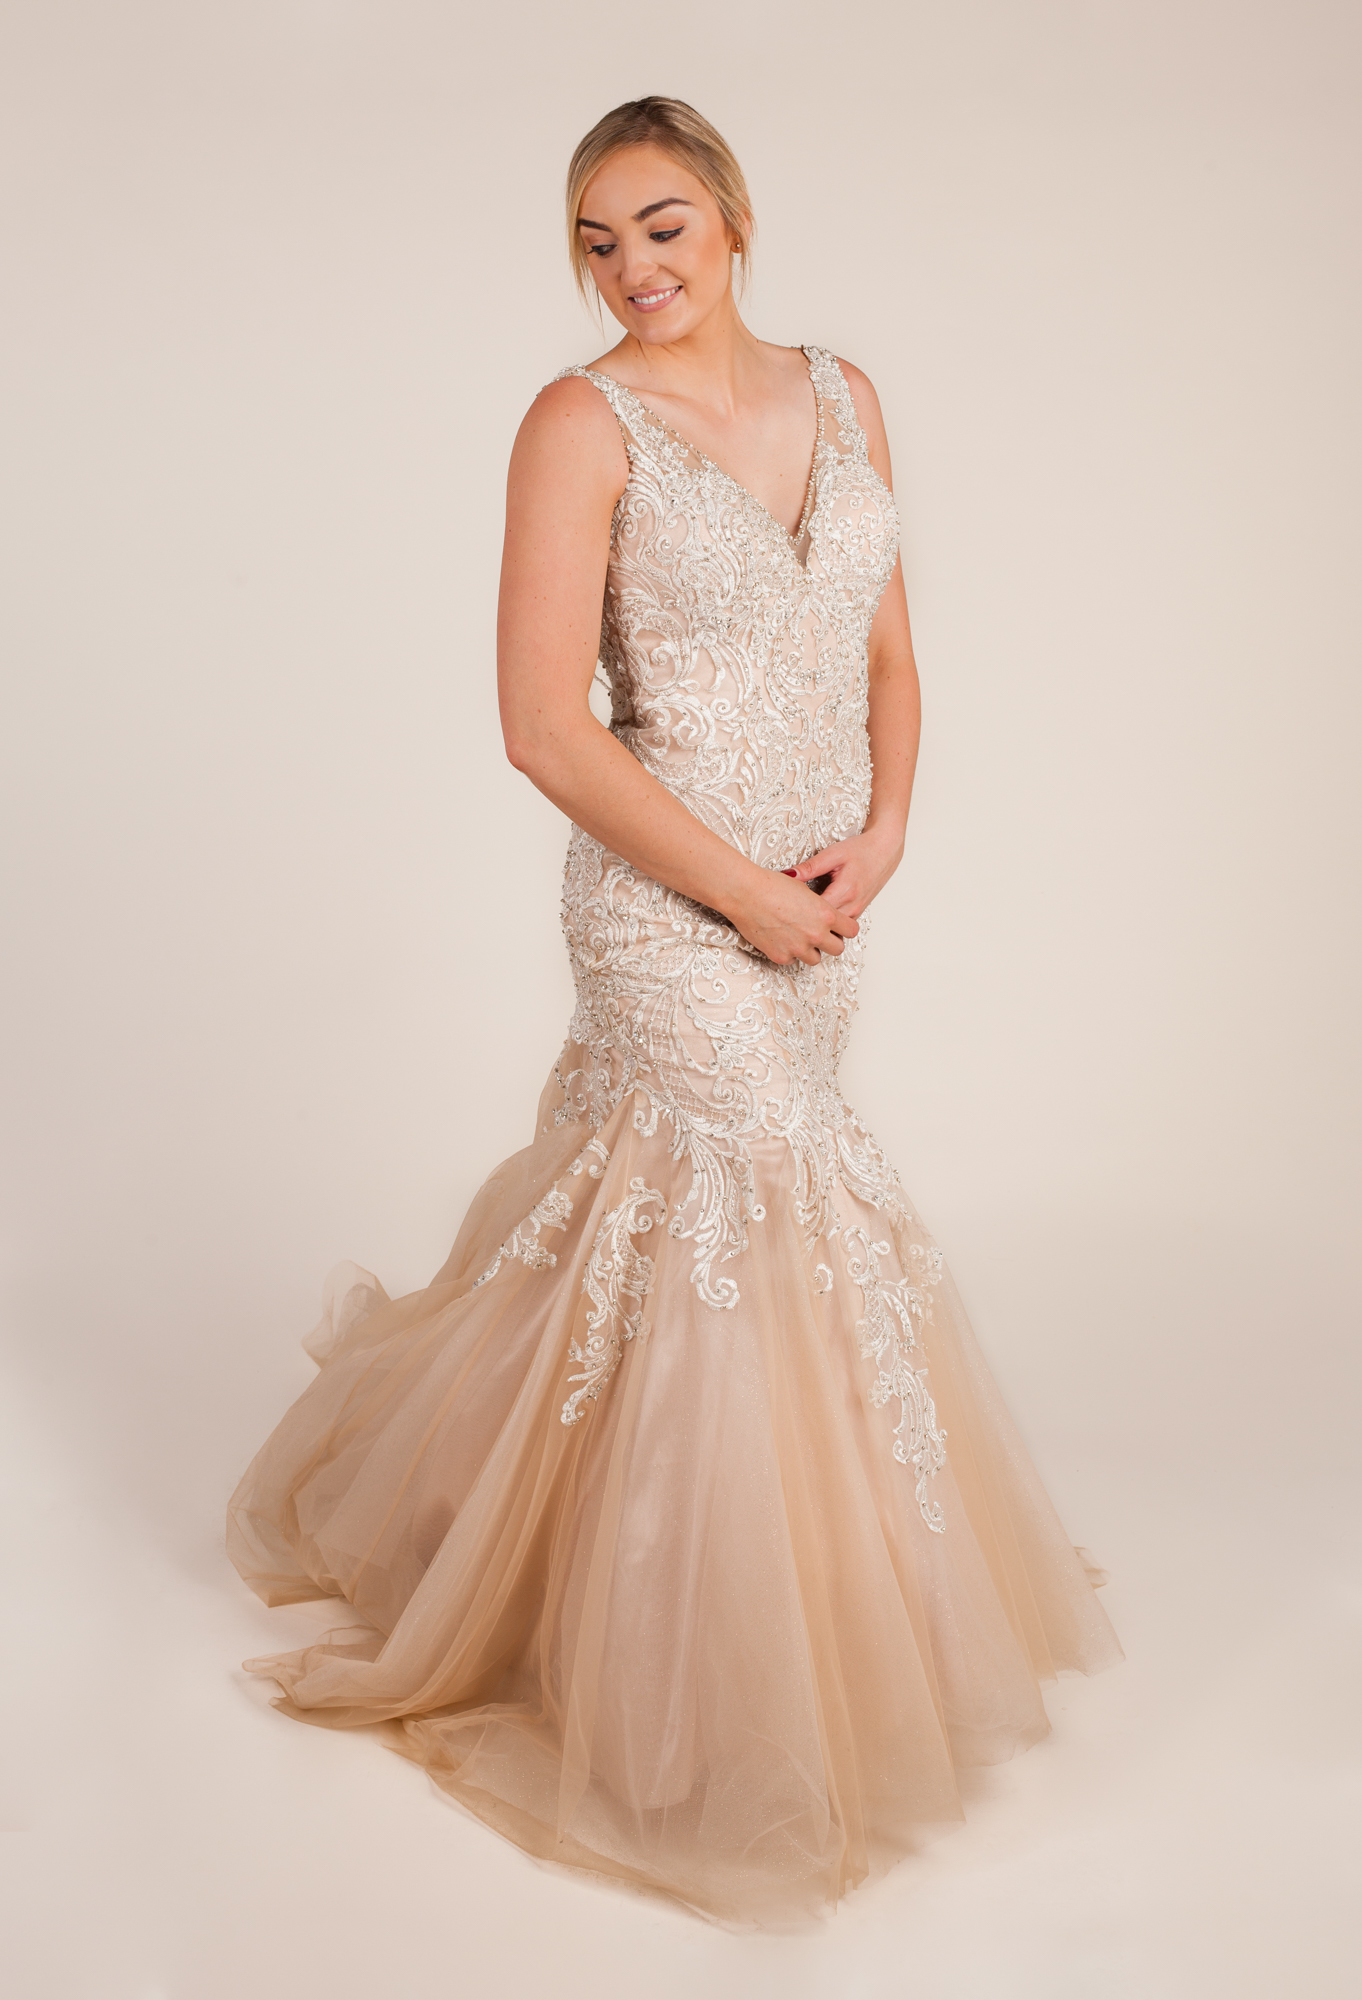 Allure bridals - C388 size  - $1125 - (55% OFF)